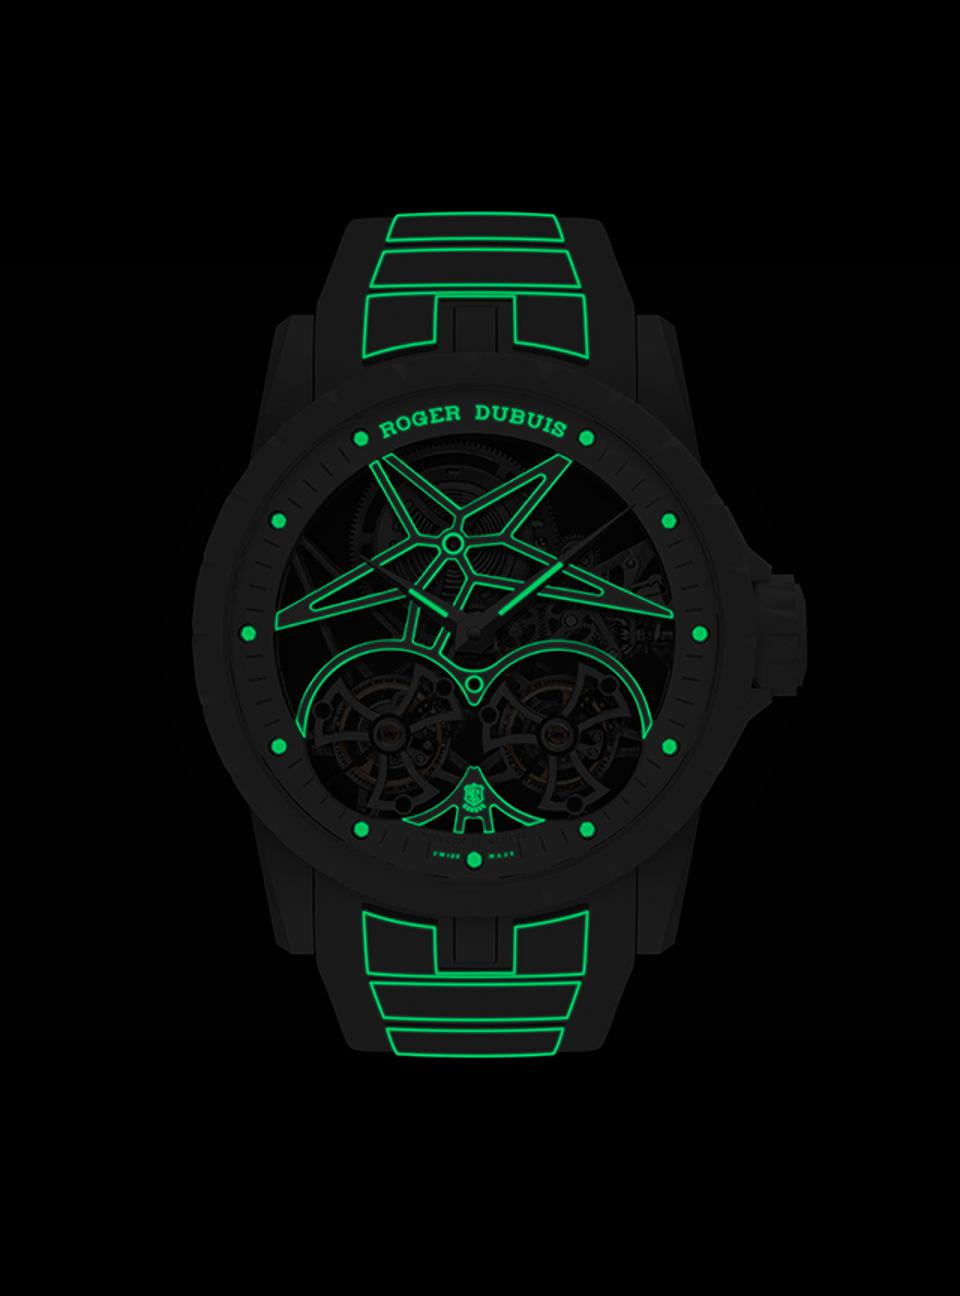 The Roger Dubuis Excalibur Twofold.